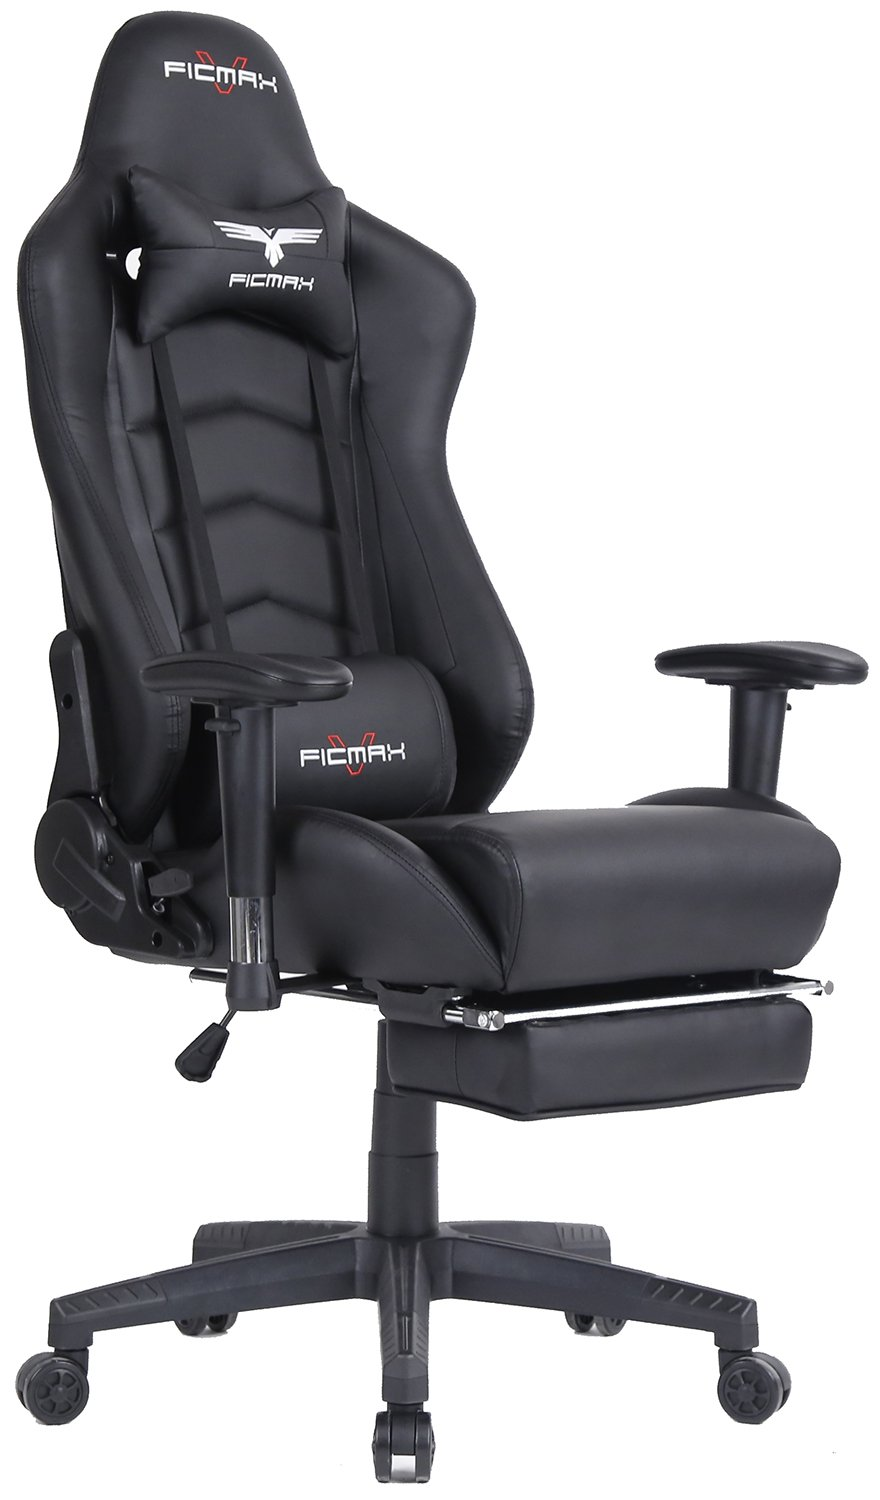 Ficmax Ergonomic High-back Large Size Office Desk Chair Swivel Black PC Gaming Chair with  sc 1 st  Amazon.com & Video Game Chairs | Amazon.com islam-shia.org